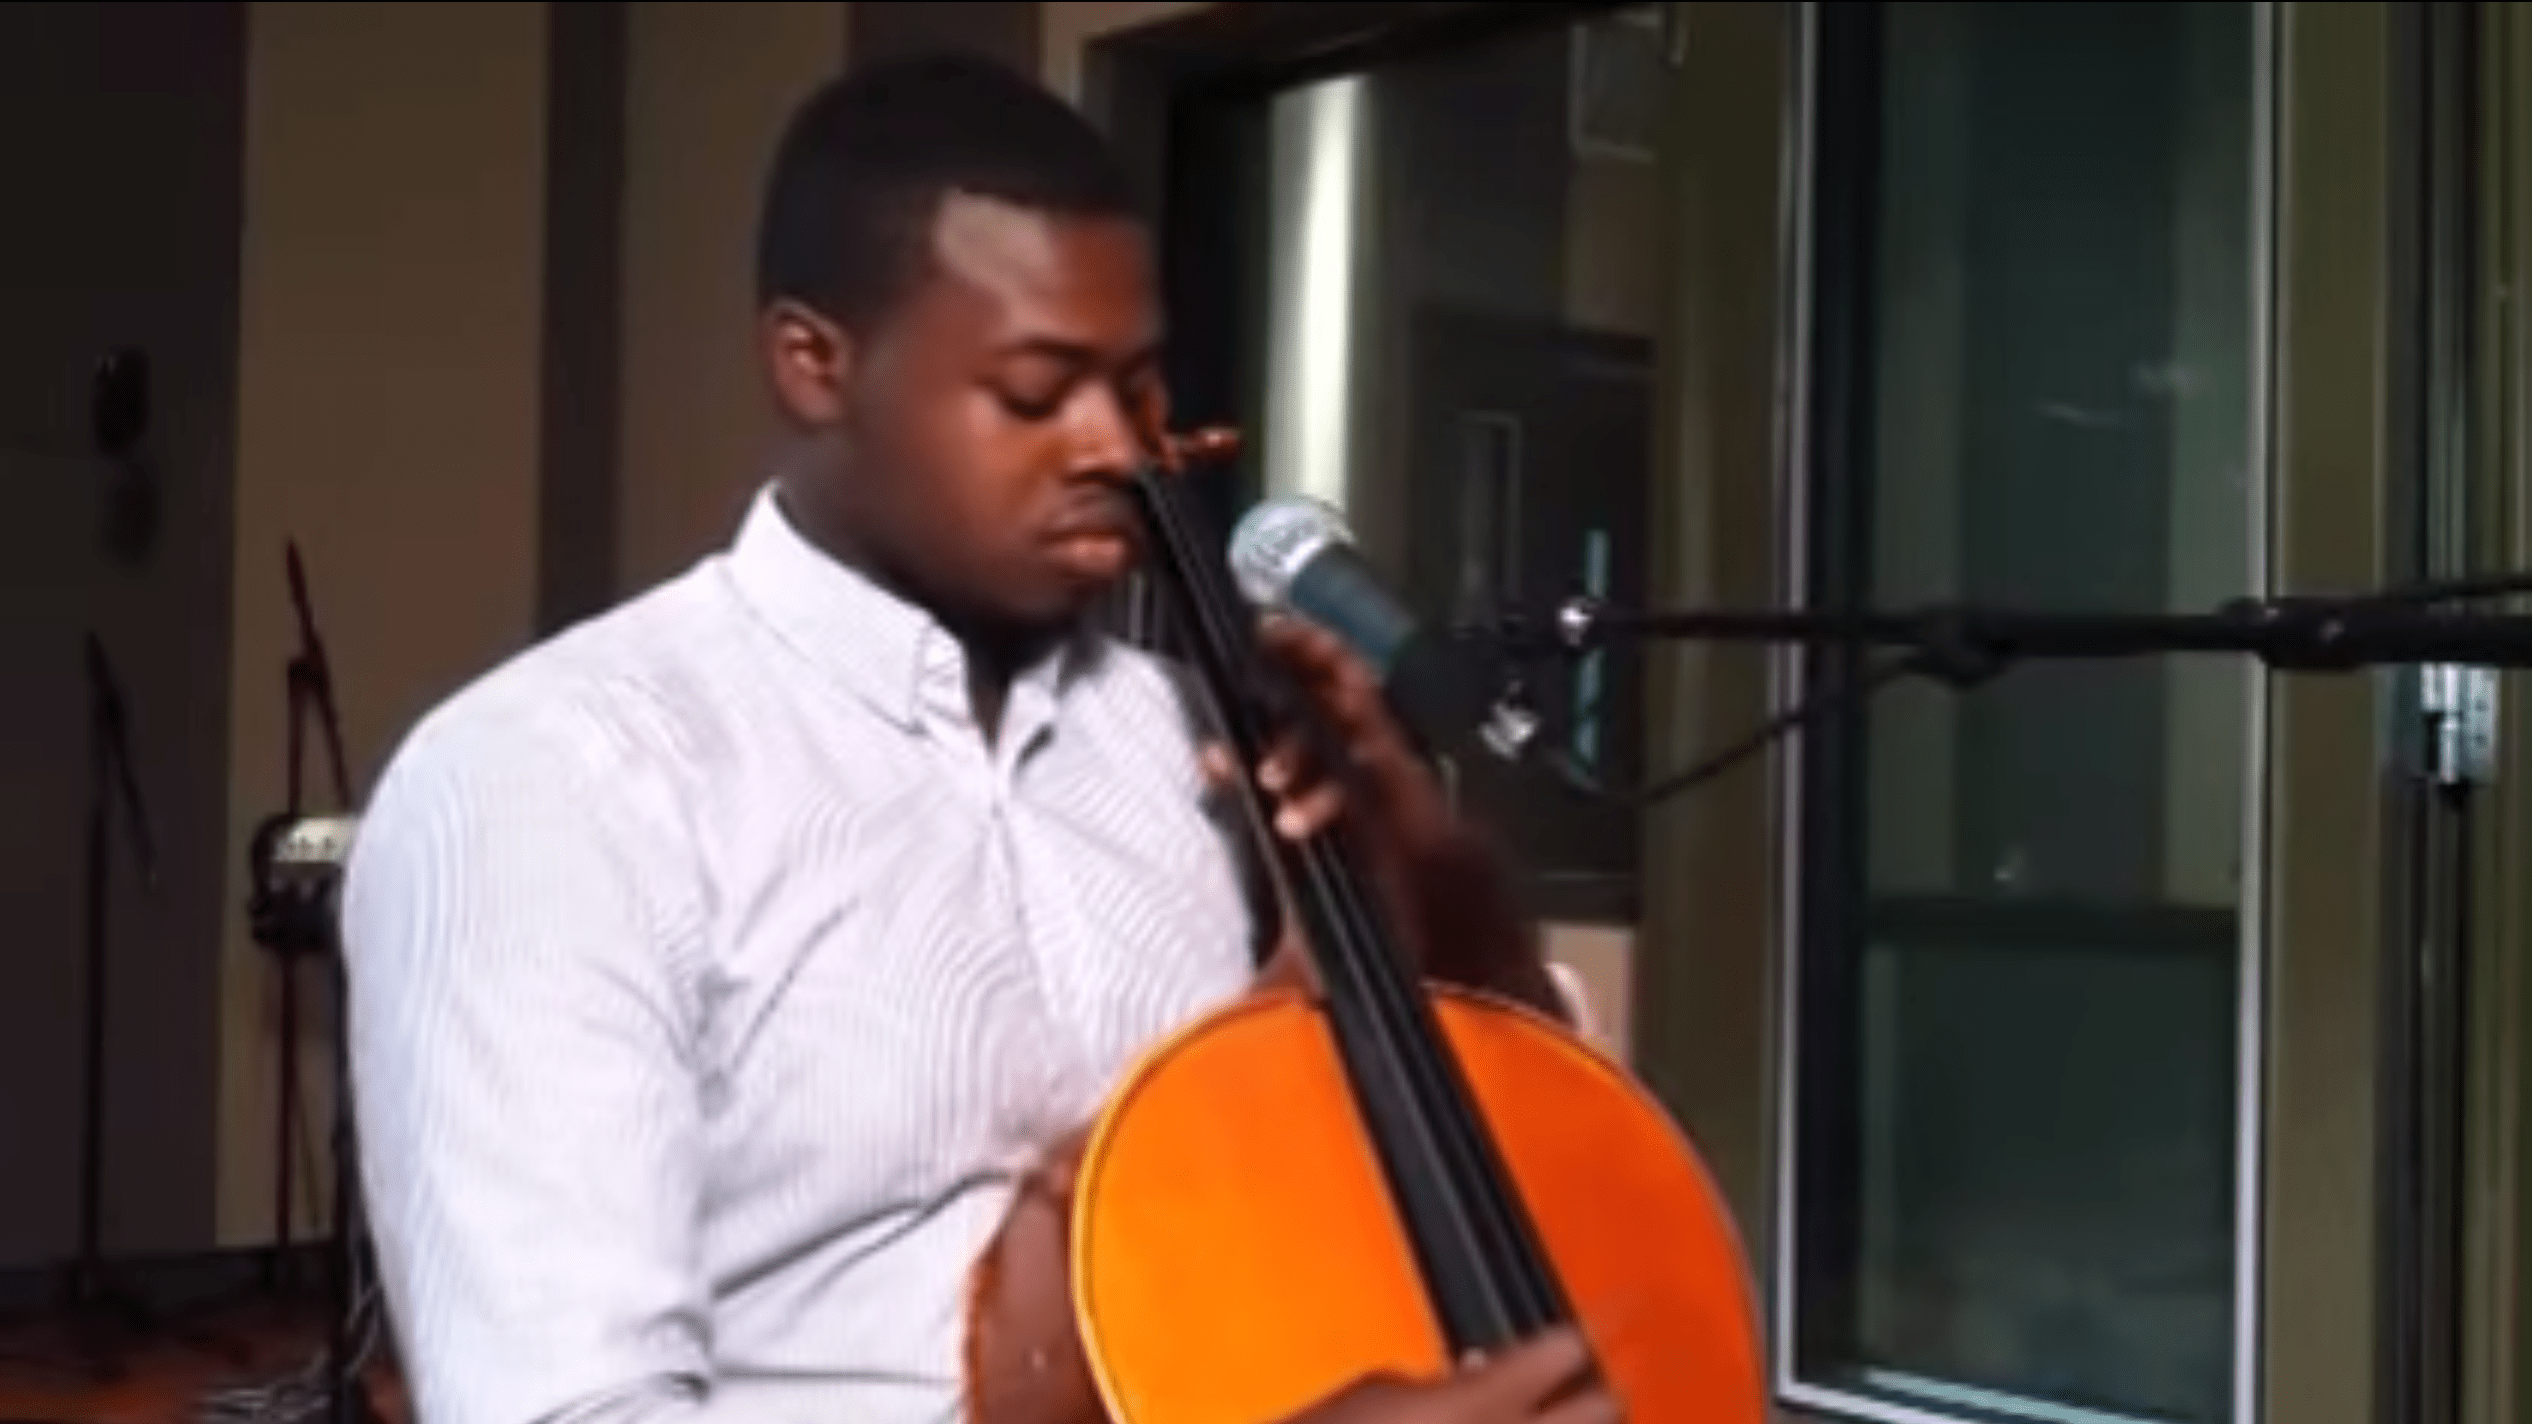 Kevin Olusola of Pentatonix visits the CPR Performance Studio for a unique performance that combines beatboxing and cello.